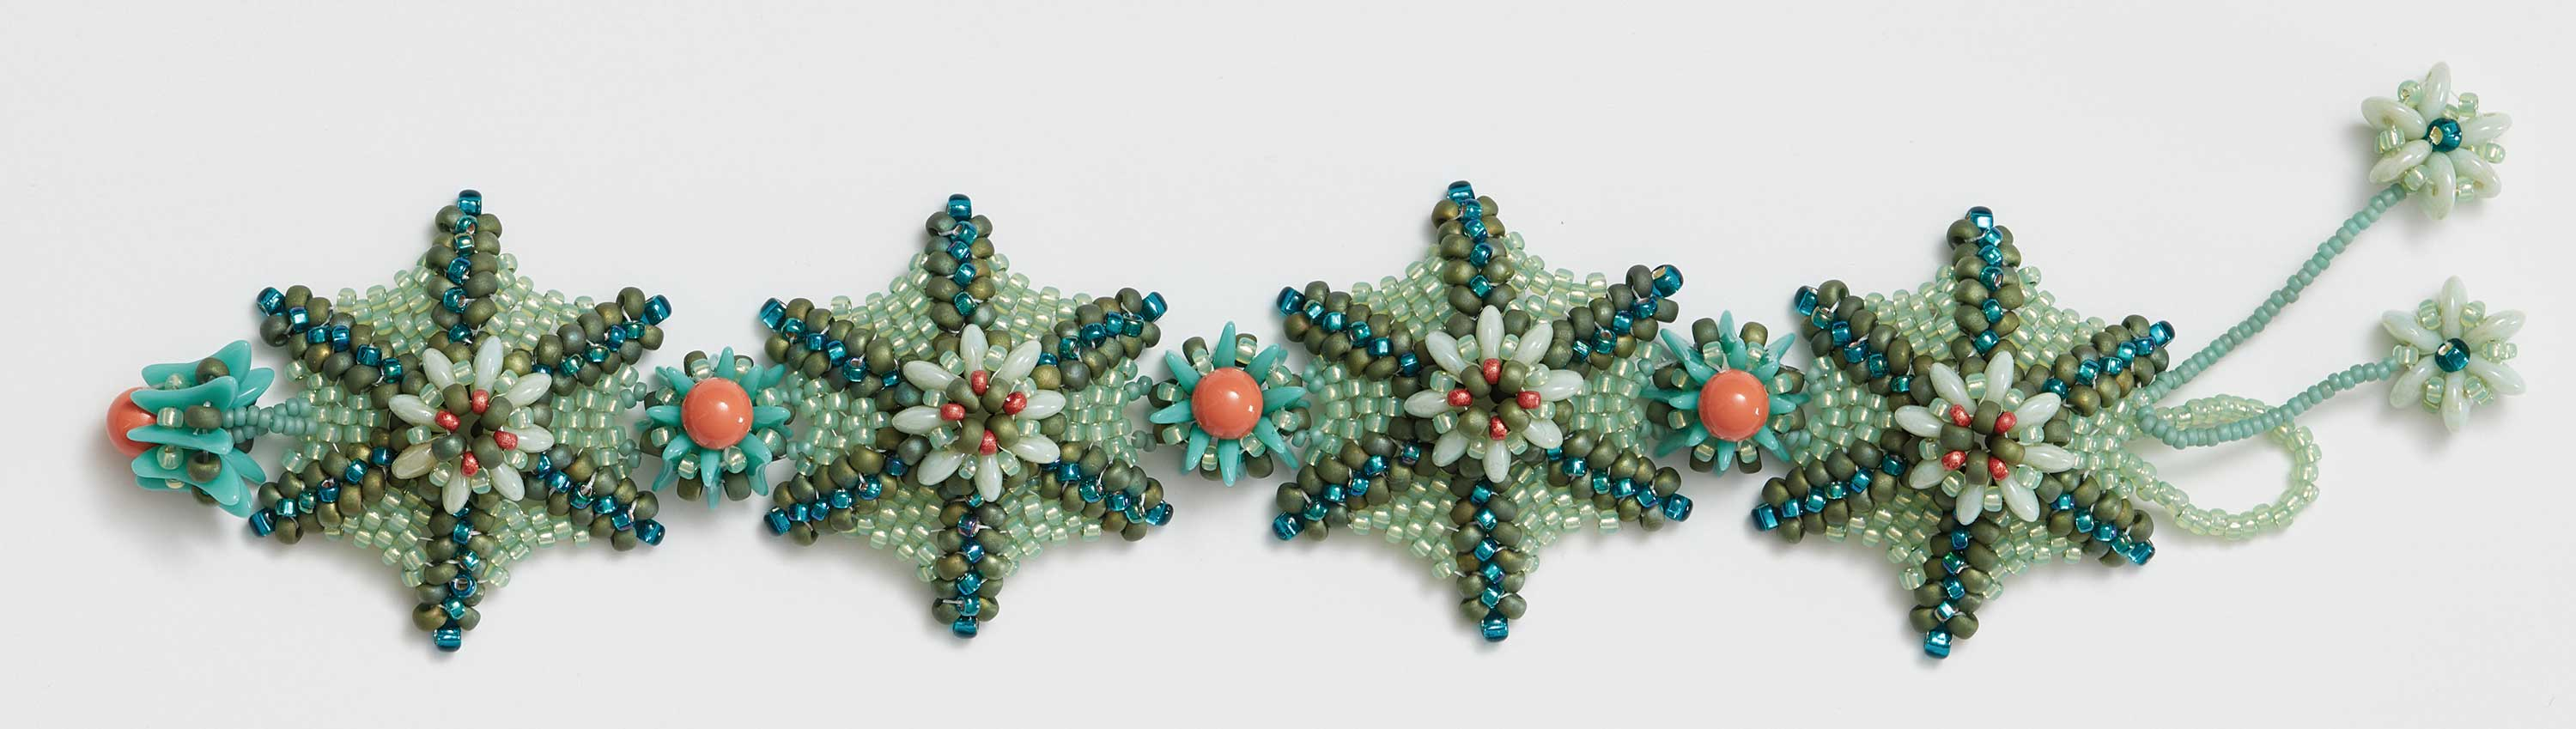 Beadwork Alternate Colorway Information for Agnieszka Watts's Aral Sea Project